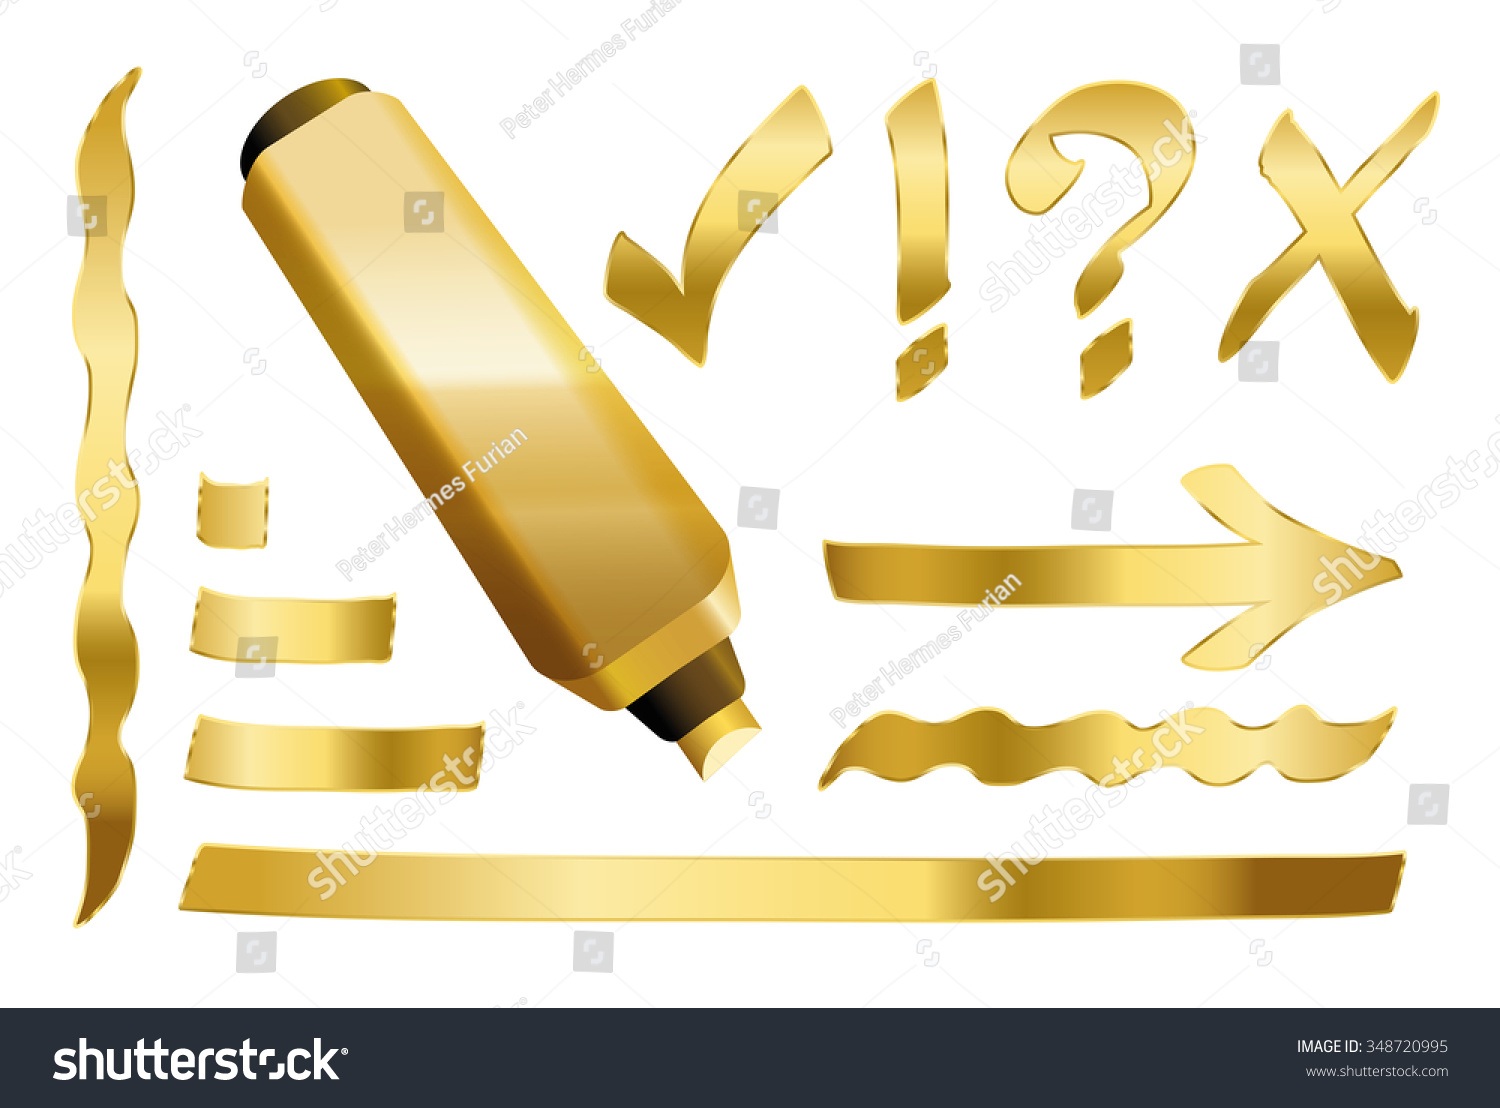 Gold Marker - Plus Some Gilded Signs Like Call Sign, Question Mark, Tick Mark, Arrow And Underlining. Vector Illustration Over White Background ...